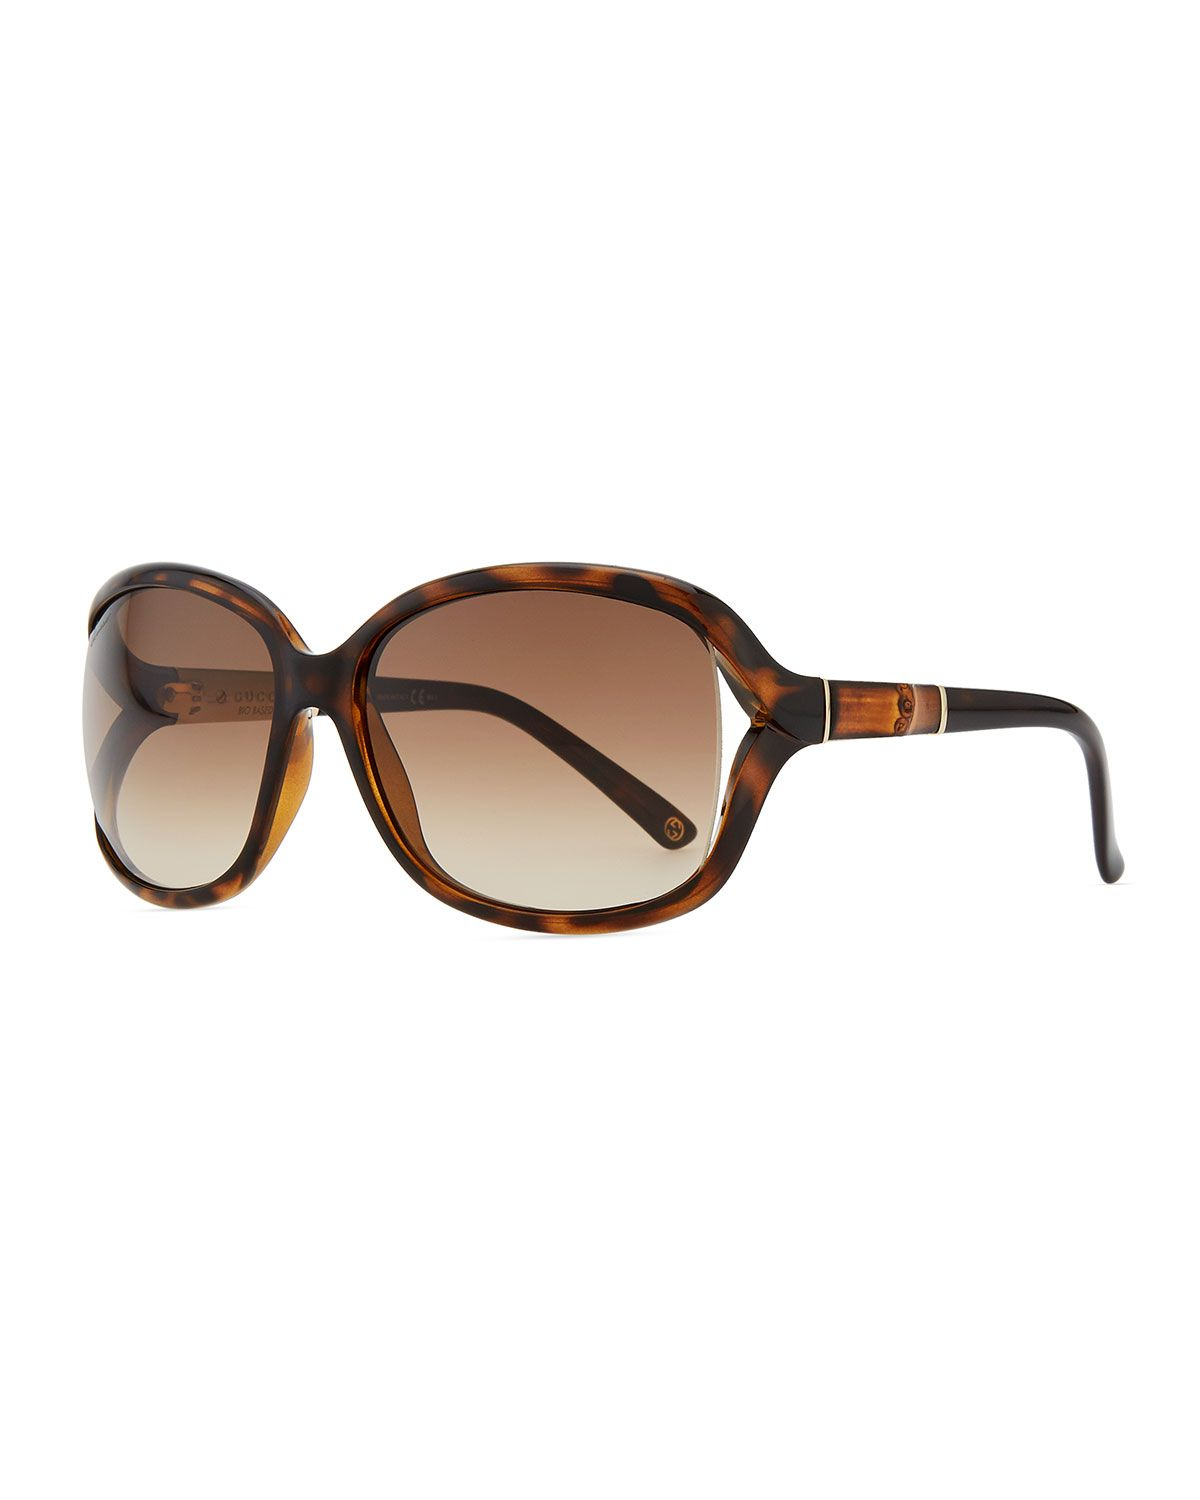 83b88f1f629 Gucci Large Sunglasses with Bamboo Arm